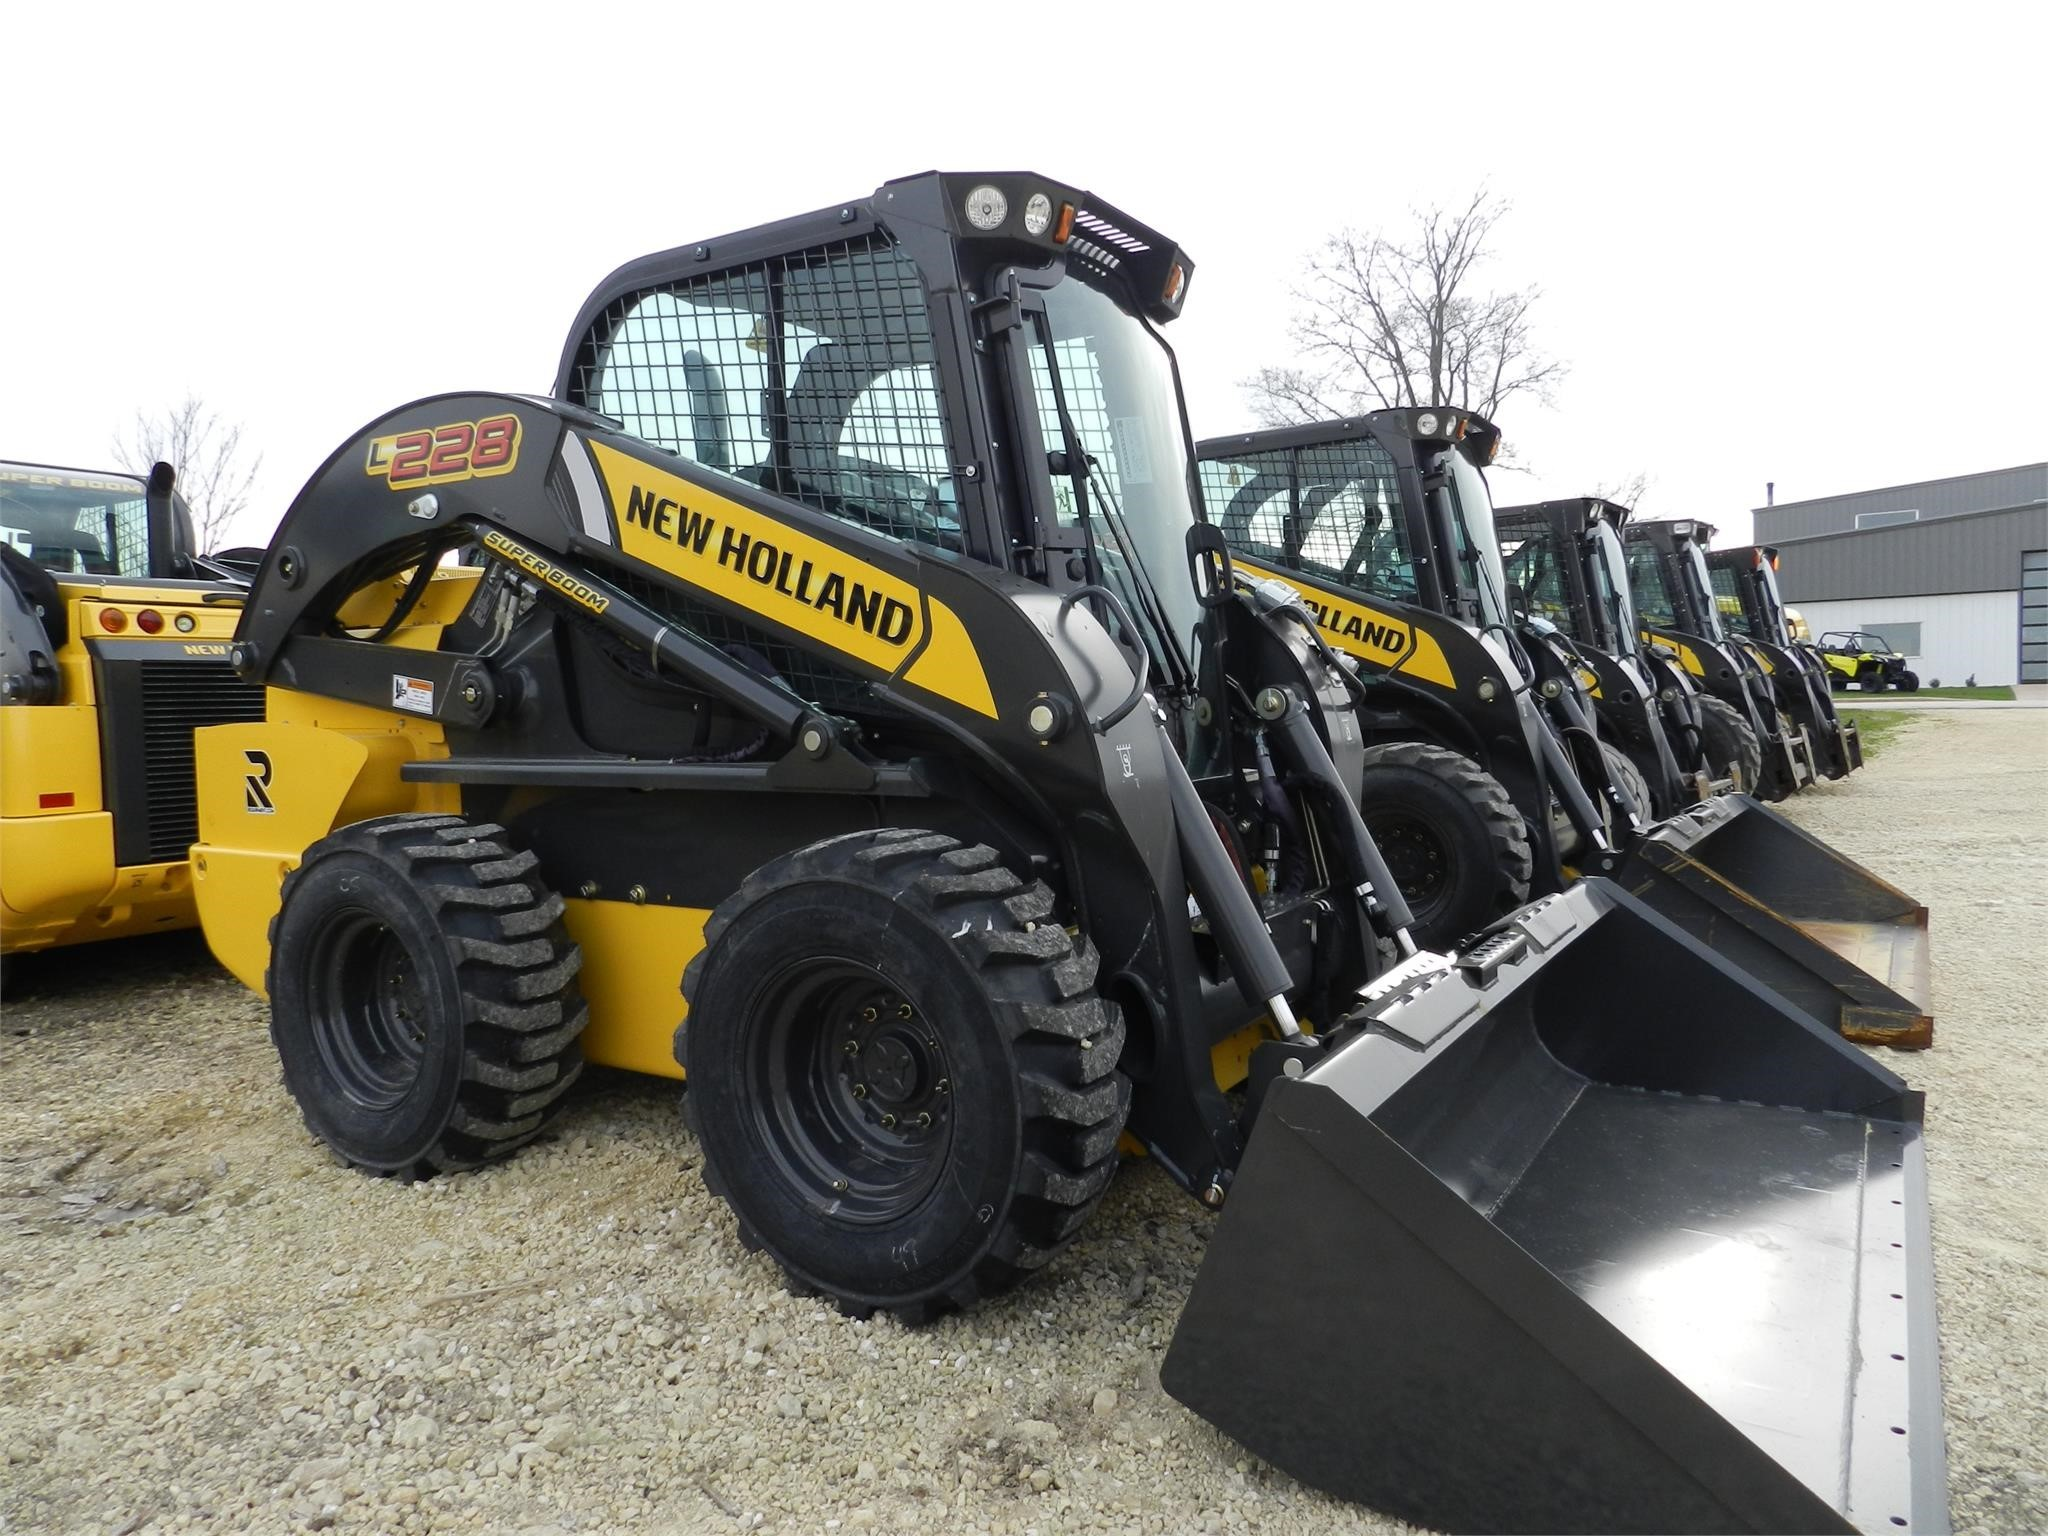 2019 New Holland L228 Skid Steer